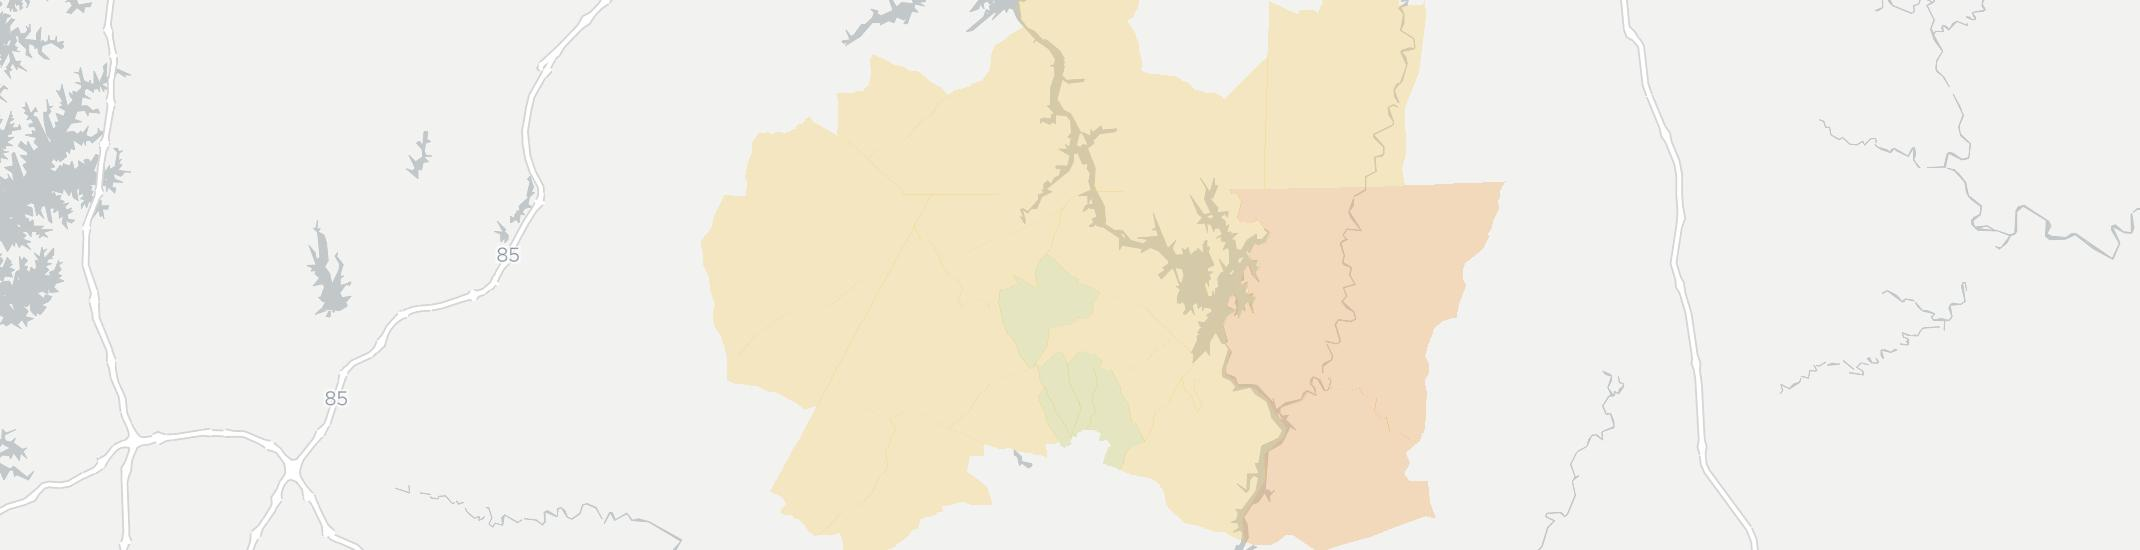 New London Internet Competition Map. Click for interactive map.